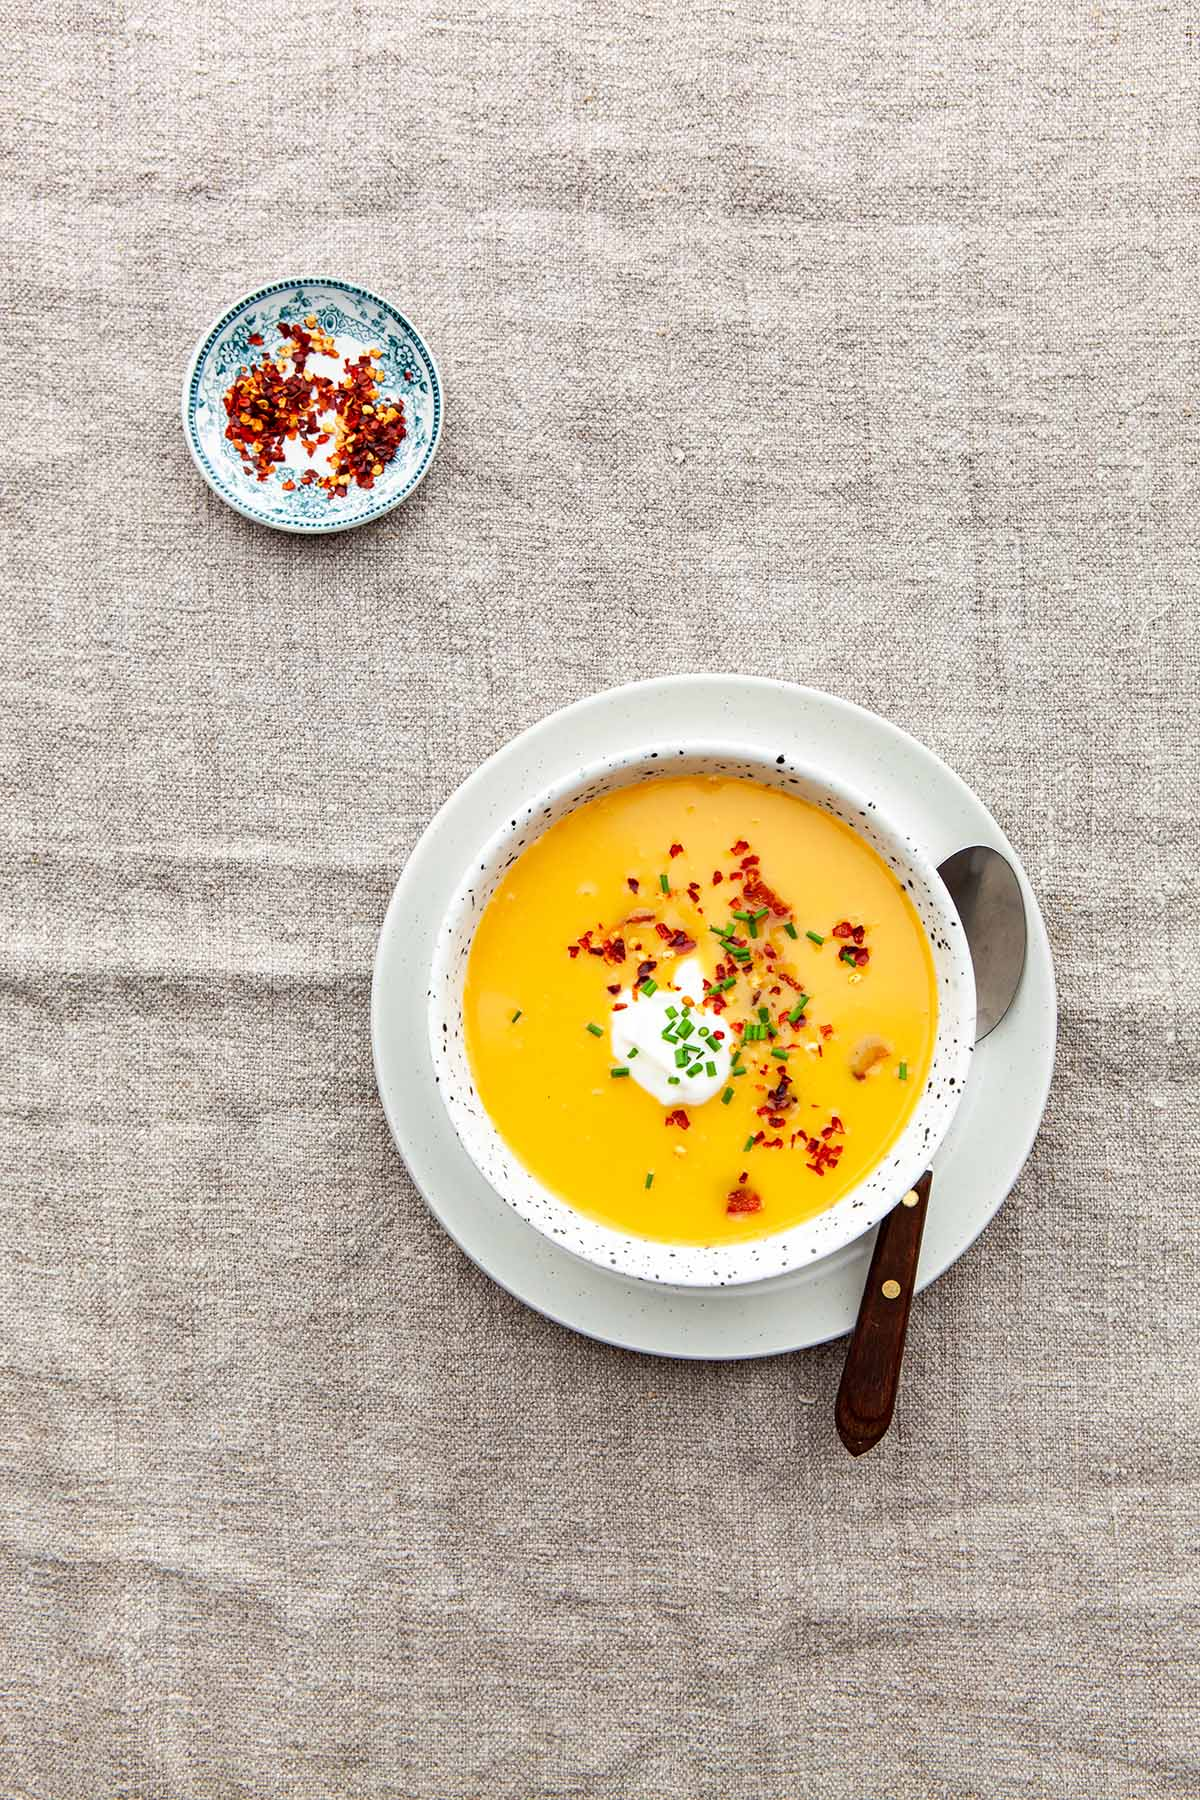 A bowl of spiced butternut squash and sweet potato soup on a linen tablecloth near a small pinch dish of chilli flakes mixed with flaky sea salt.